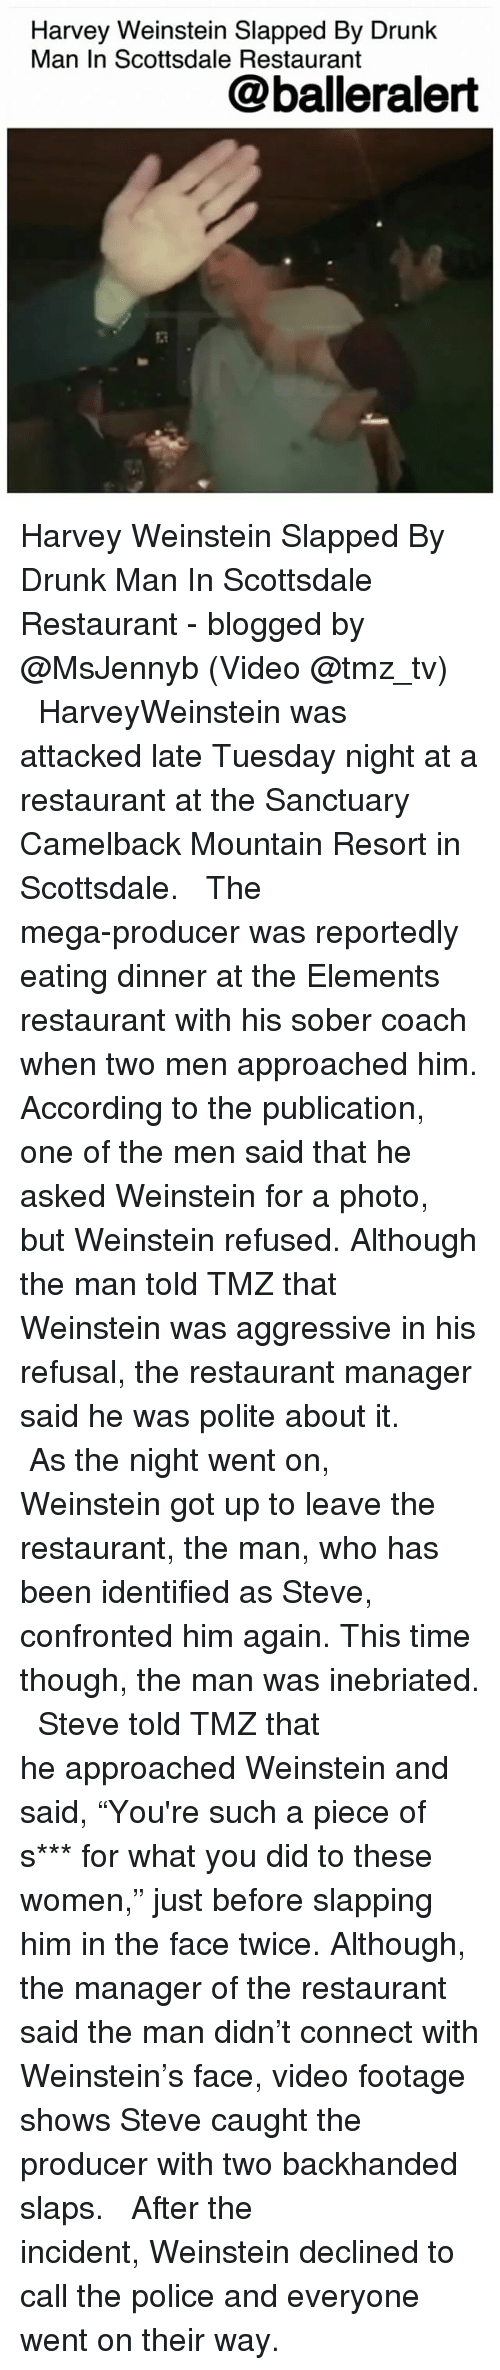 "Drunk, Memes, and Police: Harvey Weinstein Slapped By Drunk  Man In Scottsdale Restaurant  @balleralert Harvey Weinstein Slapped By Drunk Man In Scottsdale Restaurant - blogged by @MsJennyb (Video @tmz_tv) ⠀⠀⠀⠀⠀⠀⠀ ⠀⠀⠀⠀⠀⠀⠀ HarveyWeinstein was attacked late Tuesday night at a restaurant at the Sanctuary Camelback Mountain Resort in Scottsdale. ⠀⠀⠀⠀⠀⠀⠀ ⠀⠀⠀⠀⠀⠀⠀ The mega-producer was reportedly eating dinner at the Elements restaurant with his sober coach when two men approached him. According to the publication, one of the men said that he asked Weinstein for a photo, but Weinstein refused. Although the man told TMZ that Weinstein was aggressive in his refusal, the restaurant manager said he was polite about it. ⠀⠀⠀⠀⠀⠀⠀ ⠀⠀⠀⠀⠀⠀⠀ As the night went on, Weinstein got up to leave the restaurant, the man, who has been identified as Steve, confronted him again. This time though, the man was inebriated. ⠀⠀⠀⠀⠀⠀⠀ ⠀⠀⠀⠀⠀⠀⠀ Steve told TMZ that he approached Weinstein and said, ""You're such a piece of s*** for what you did to these women,"" just before slapping him in the face twice. Although, the manager of the restaurant said the man didn't connect with Weinstein's face, video footage shows Steve caught the producer with two backhanded slaps. ⠀⠀⠀⠀⠀⠀⠀ ⠀⠀⠀⠀⠀⠀⠀ After the incident, Weinstein declined to call the police and everyone went on their way."